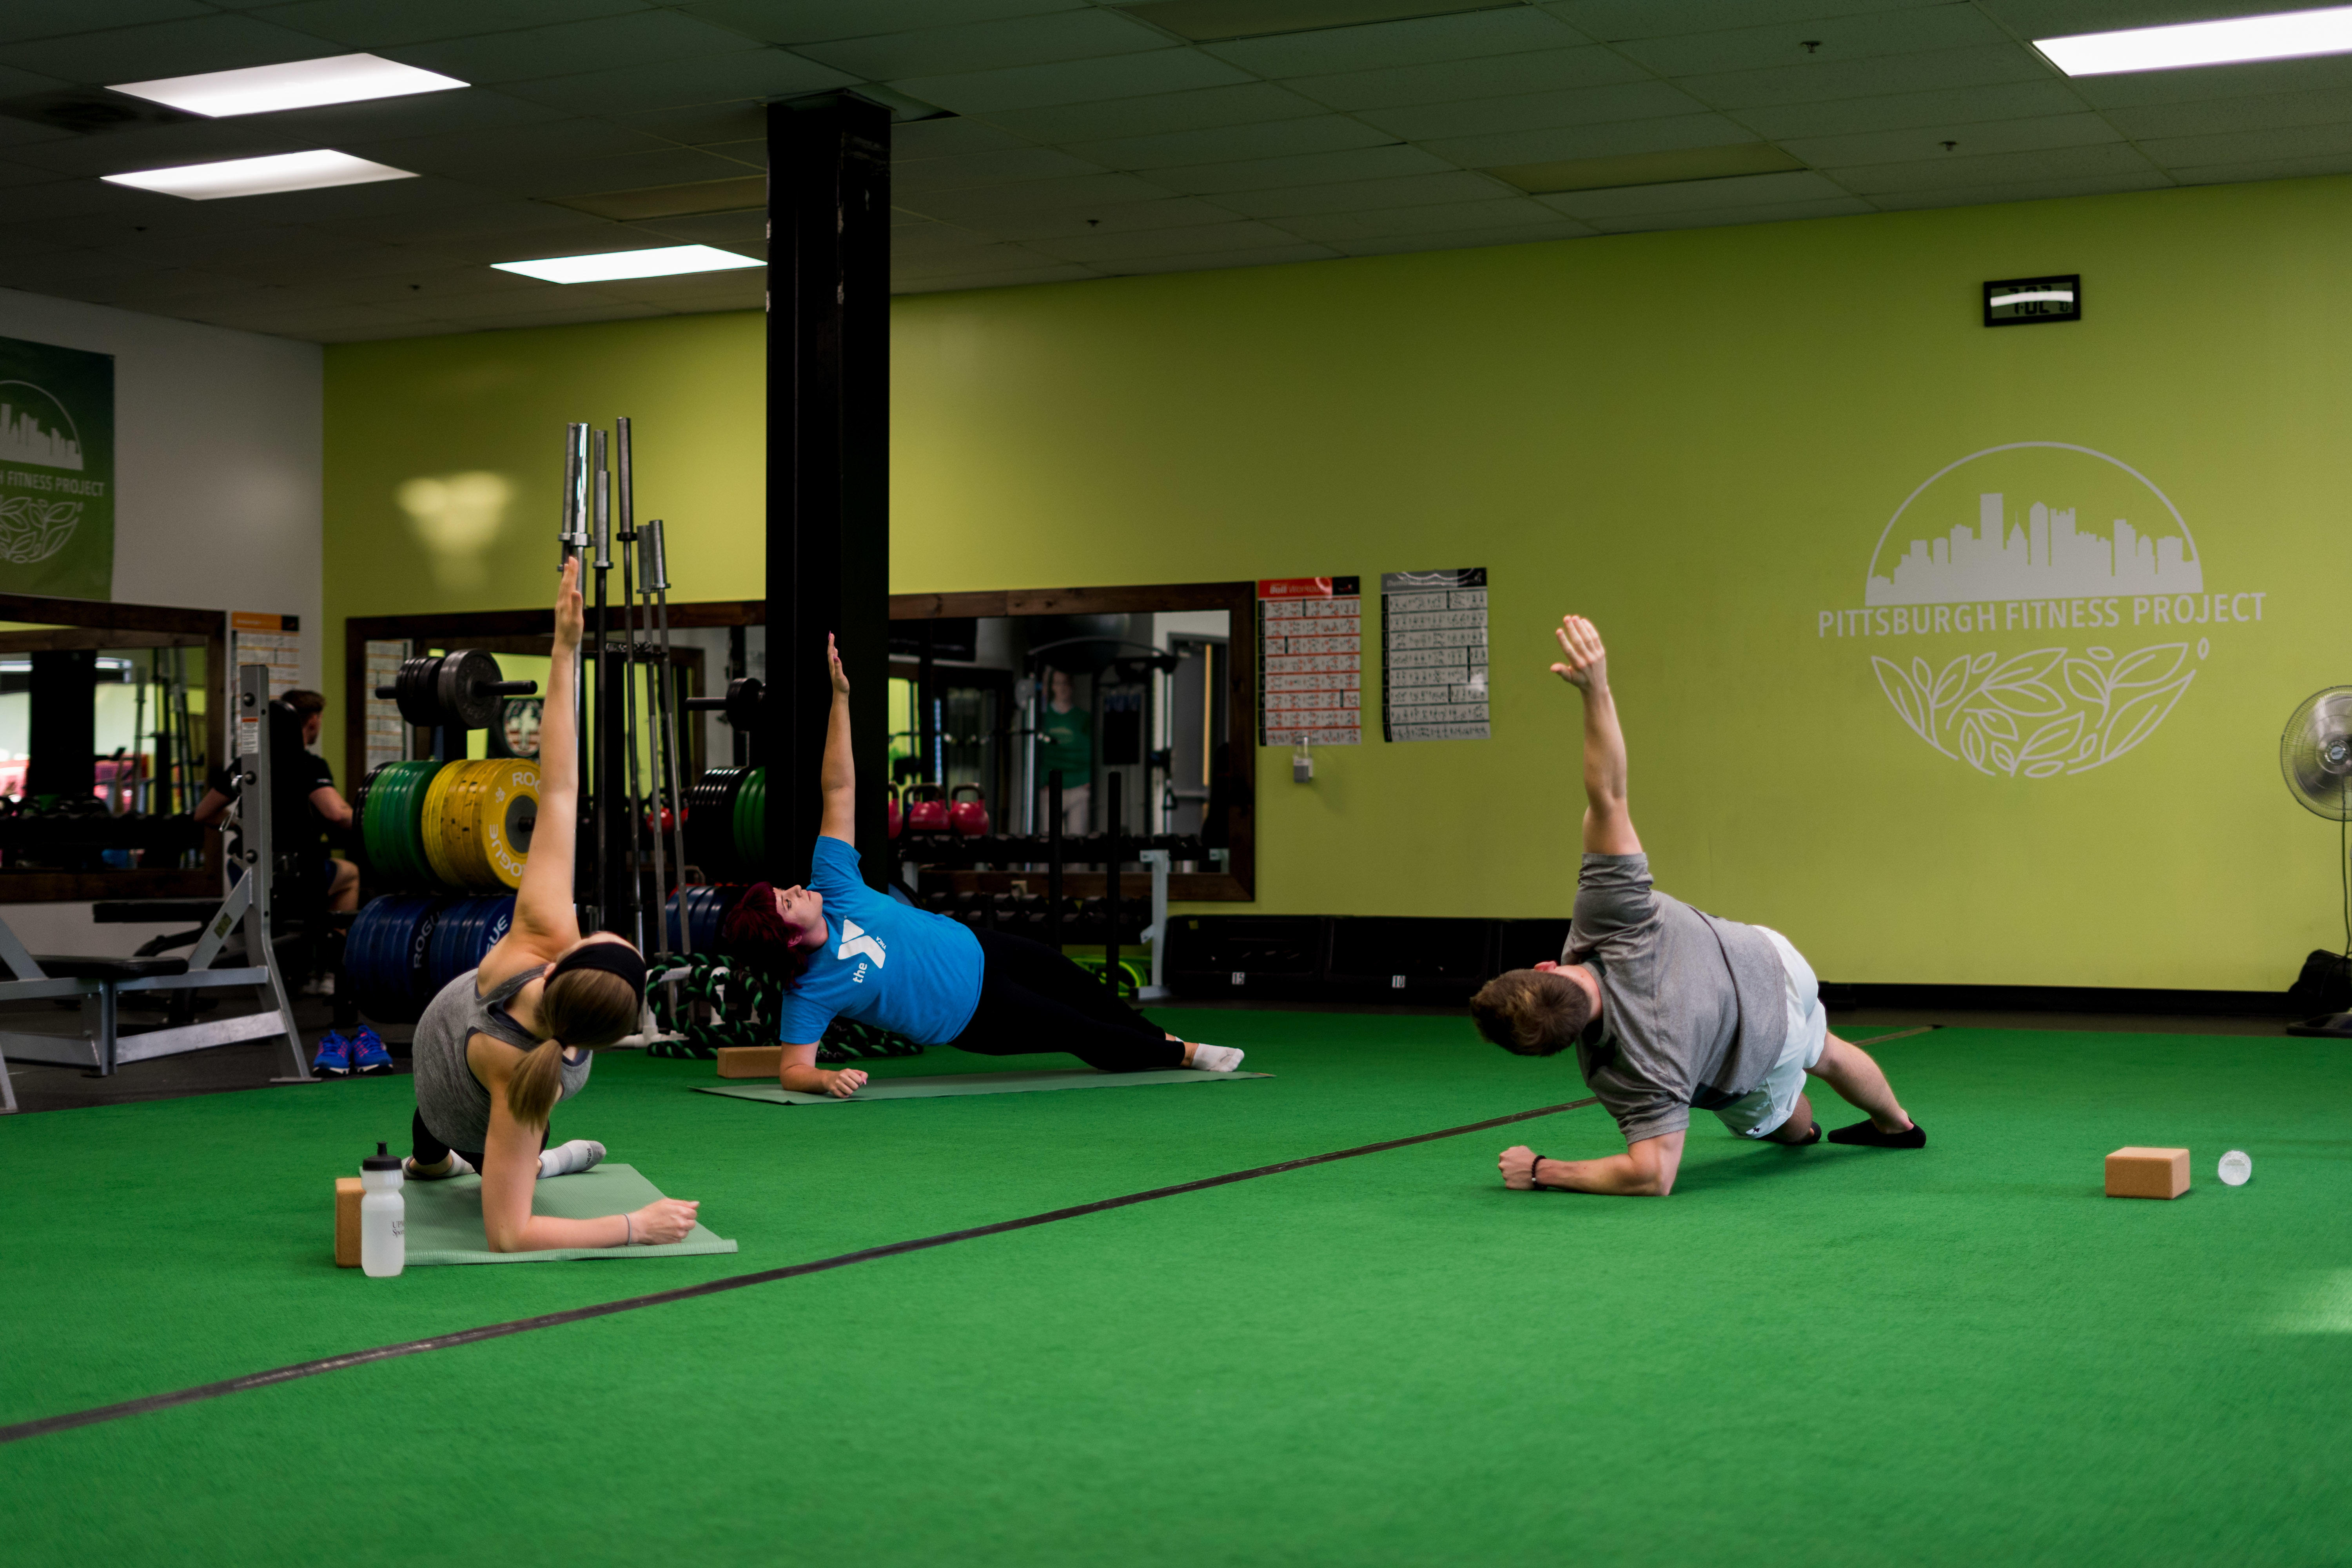 Pittsburgh Fitness Project image 5